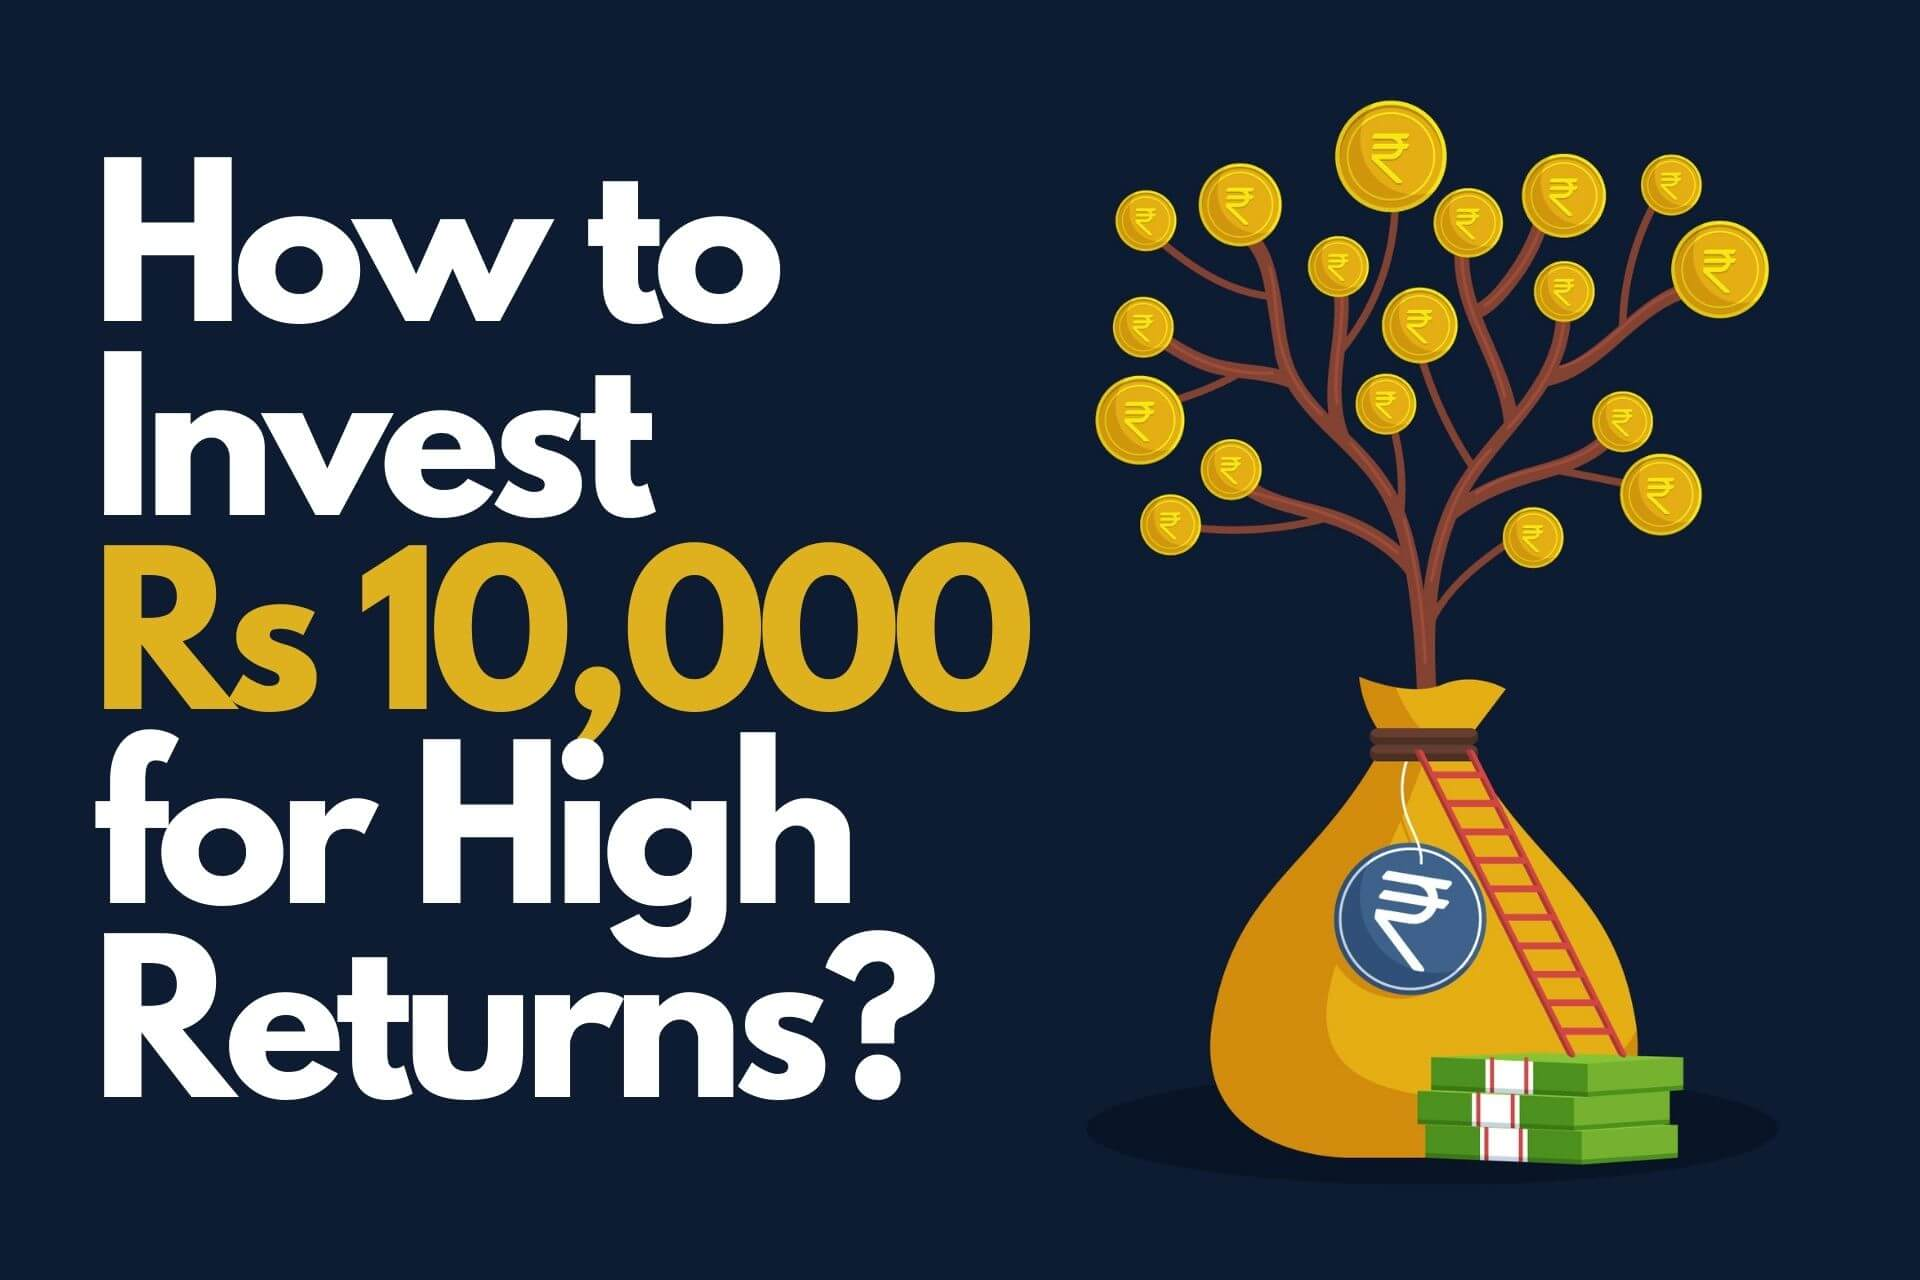 How to Invest Rs 10,000 for High Returns in Stock Market